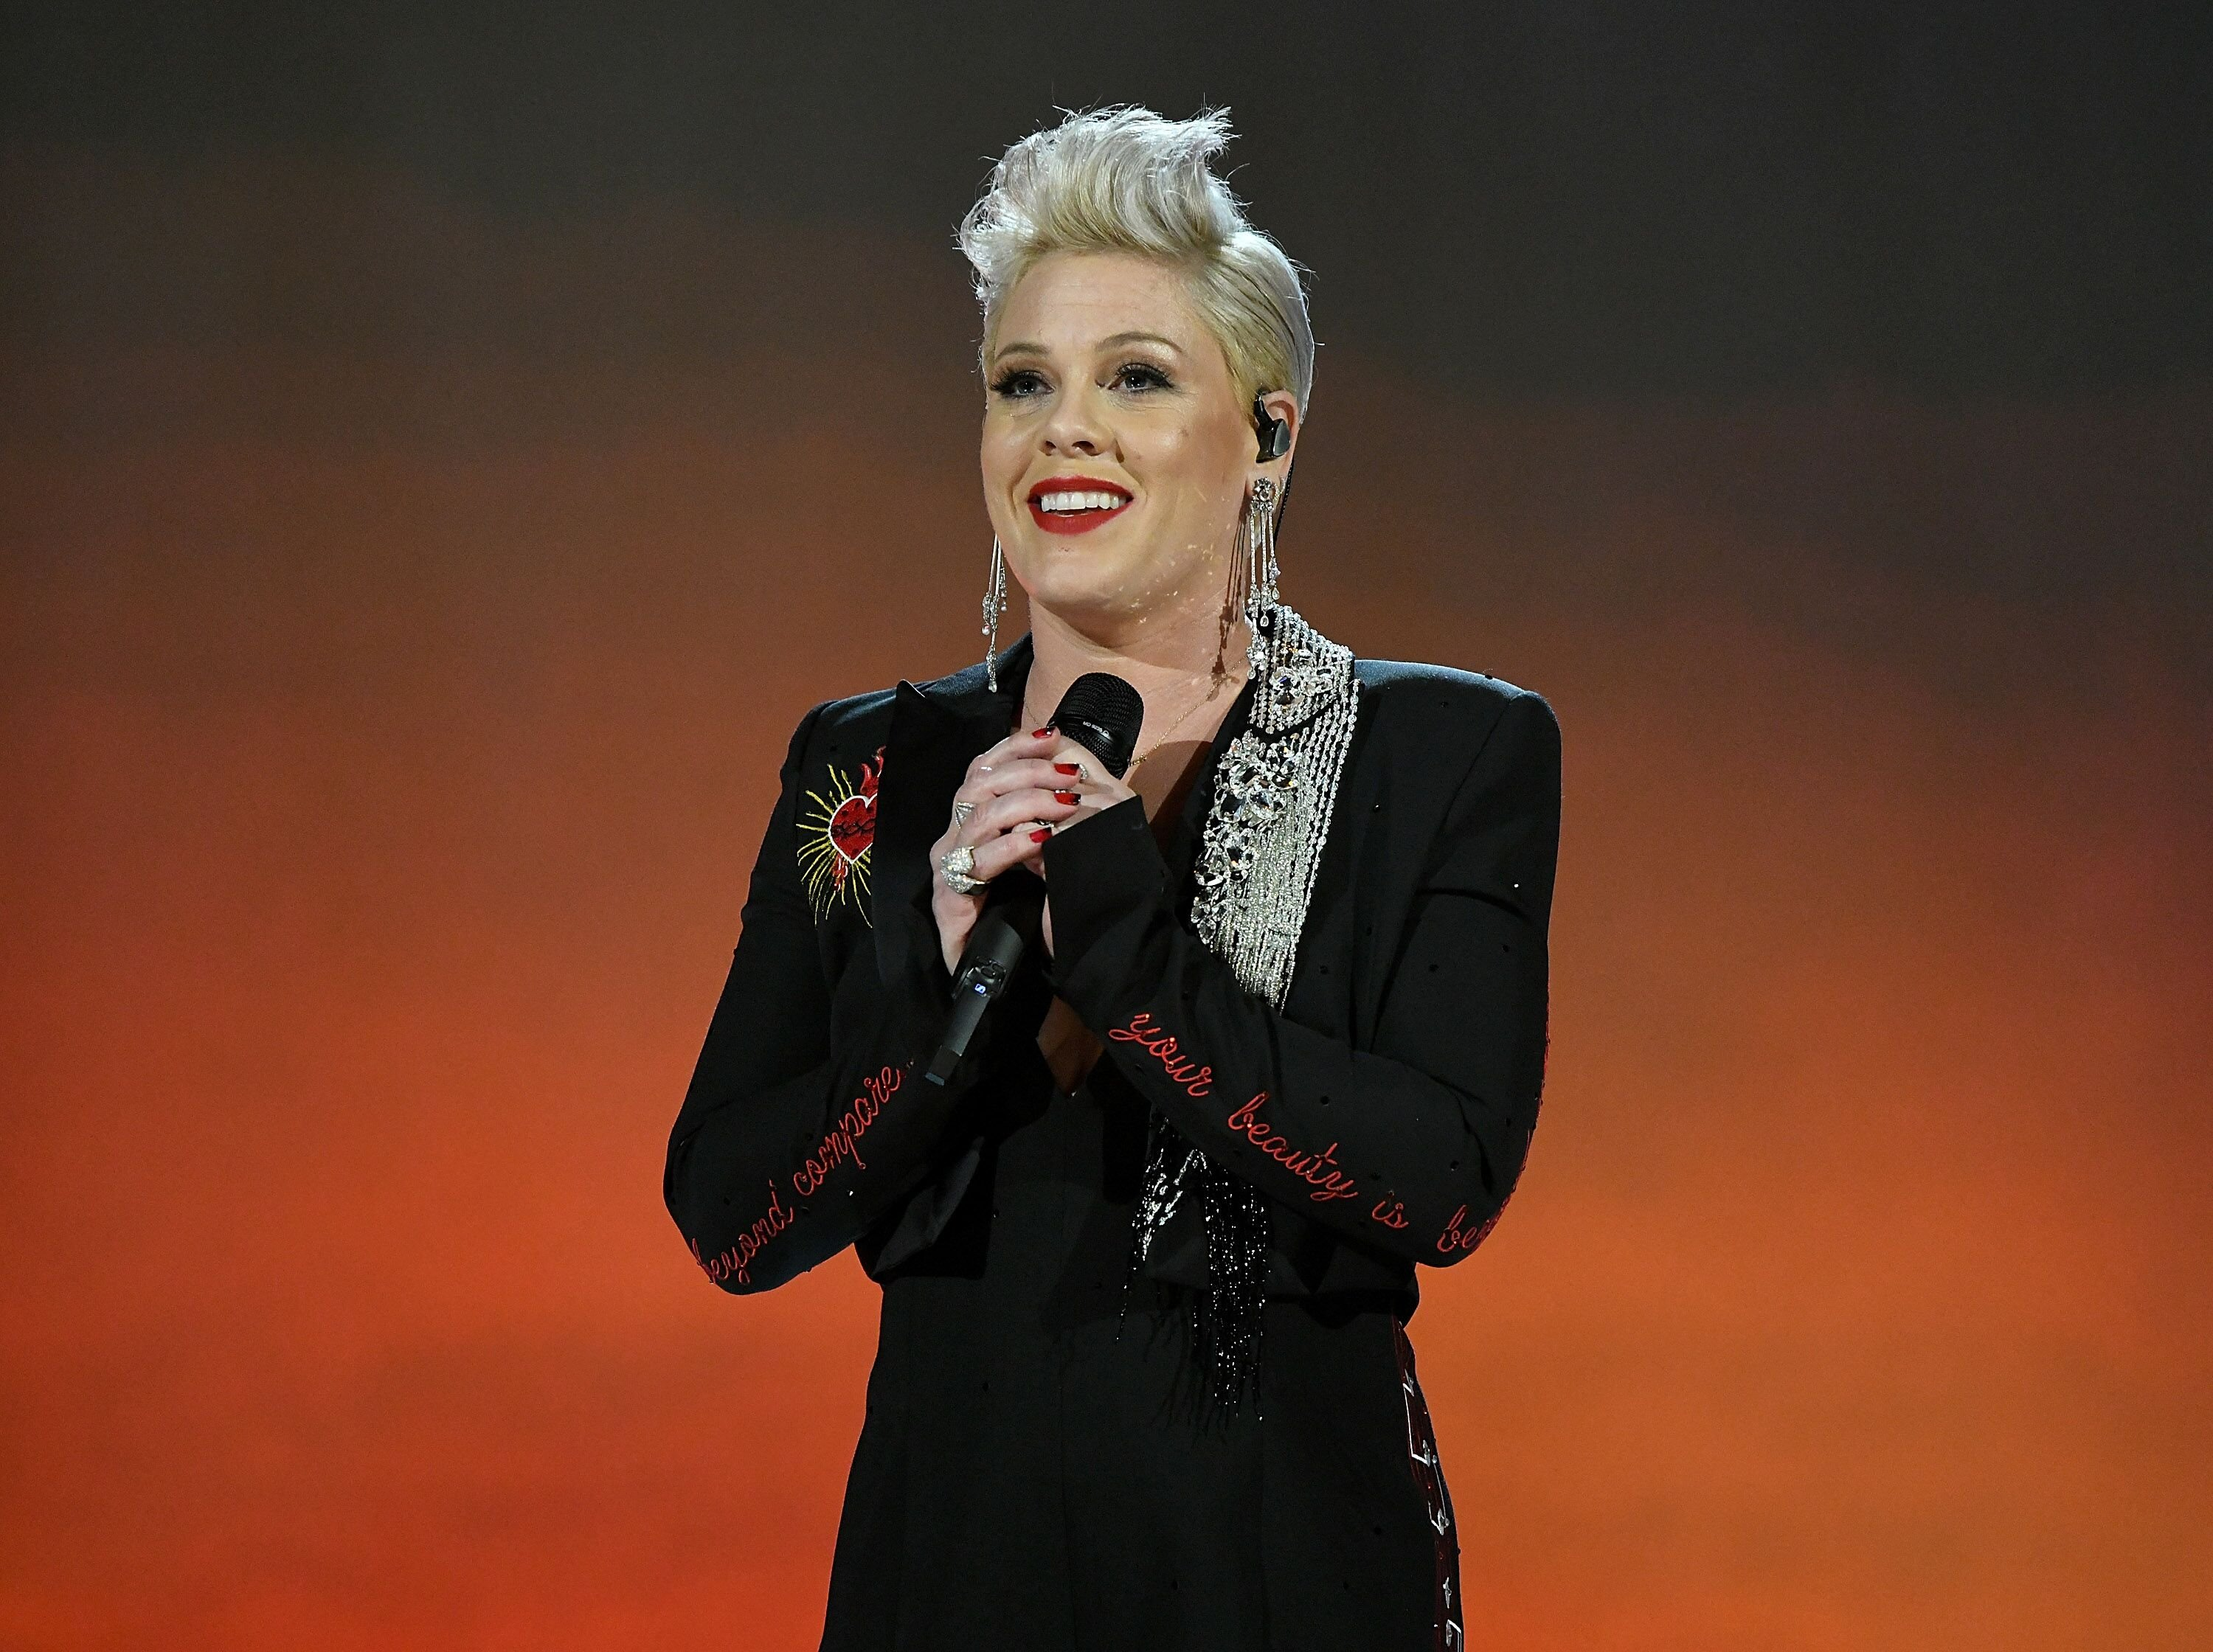 Pink performs onstage at MusiCares Person of the Year honoring Dolly Parton at Los Angeles Convention Center on February 8, 2019 | Photo: Getty Images